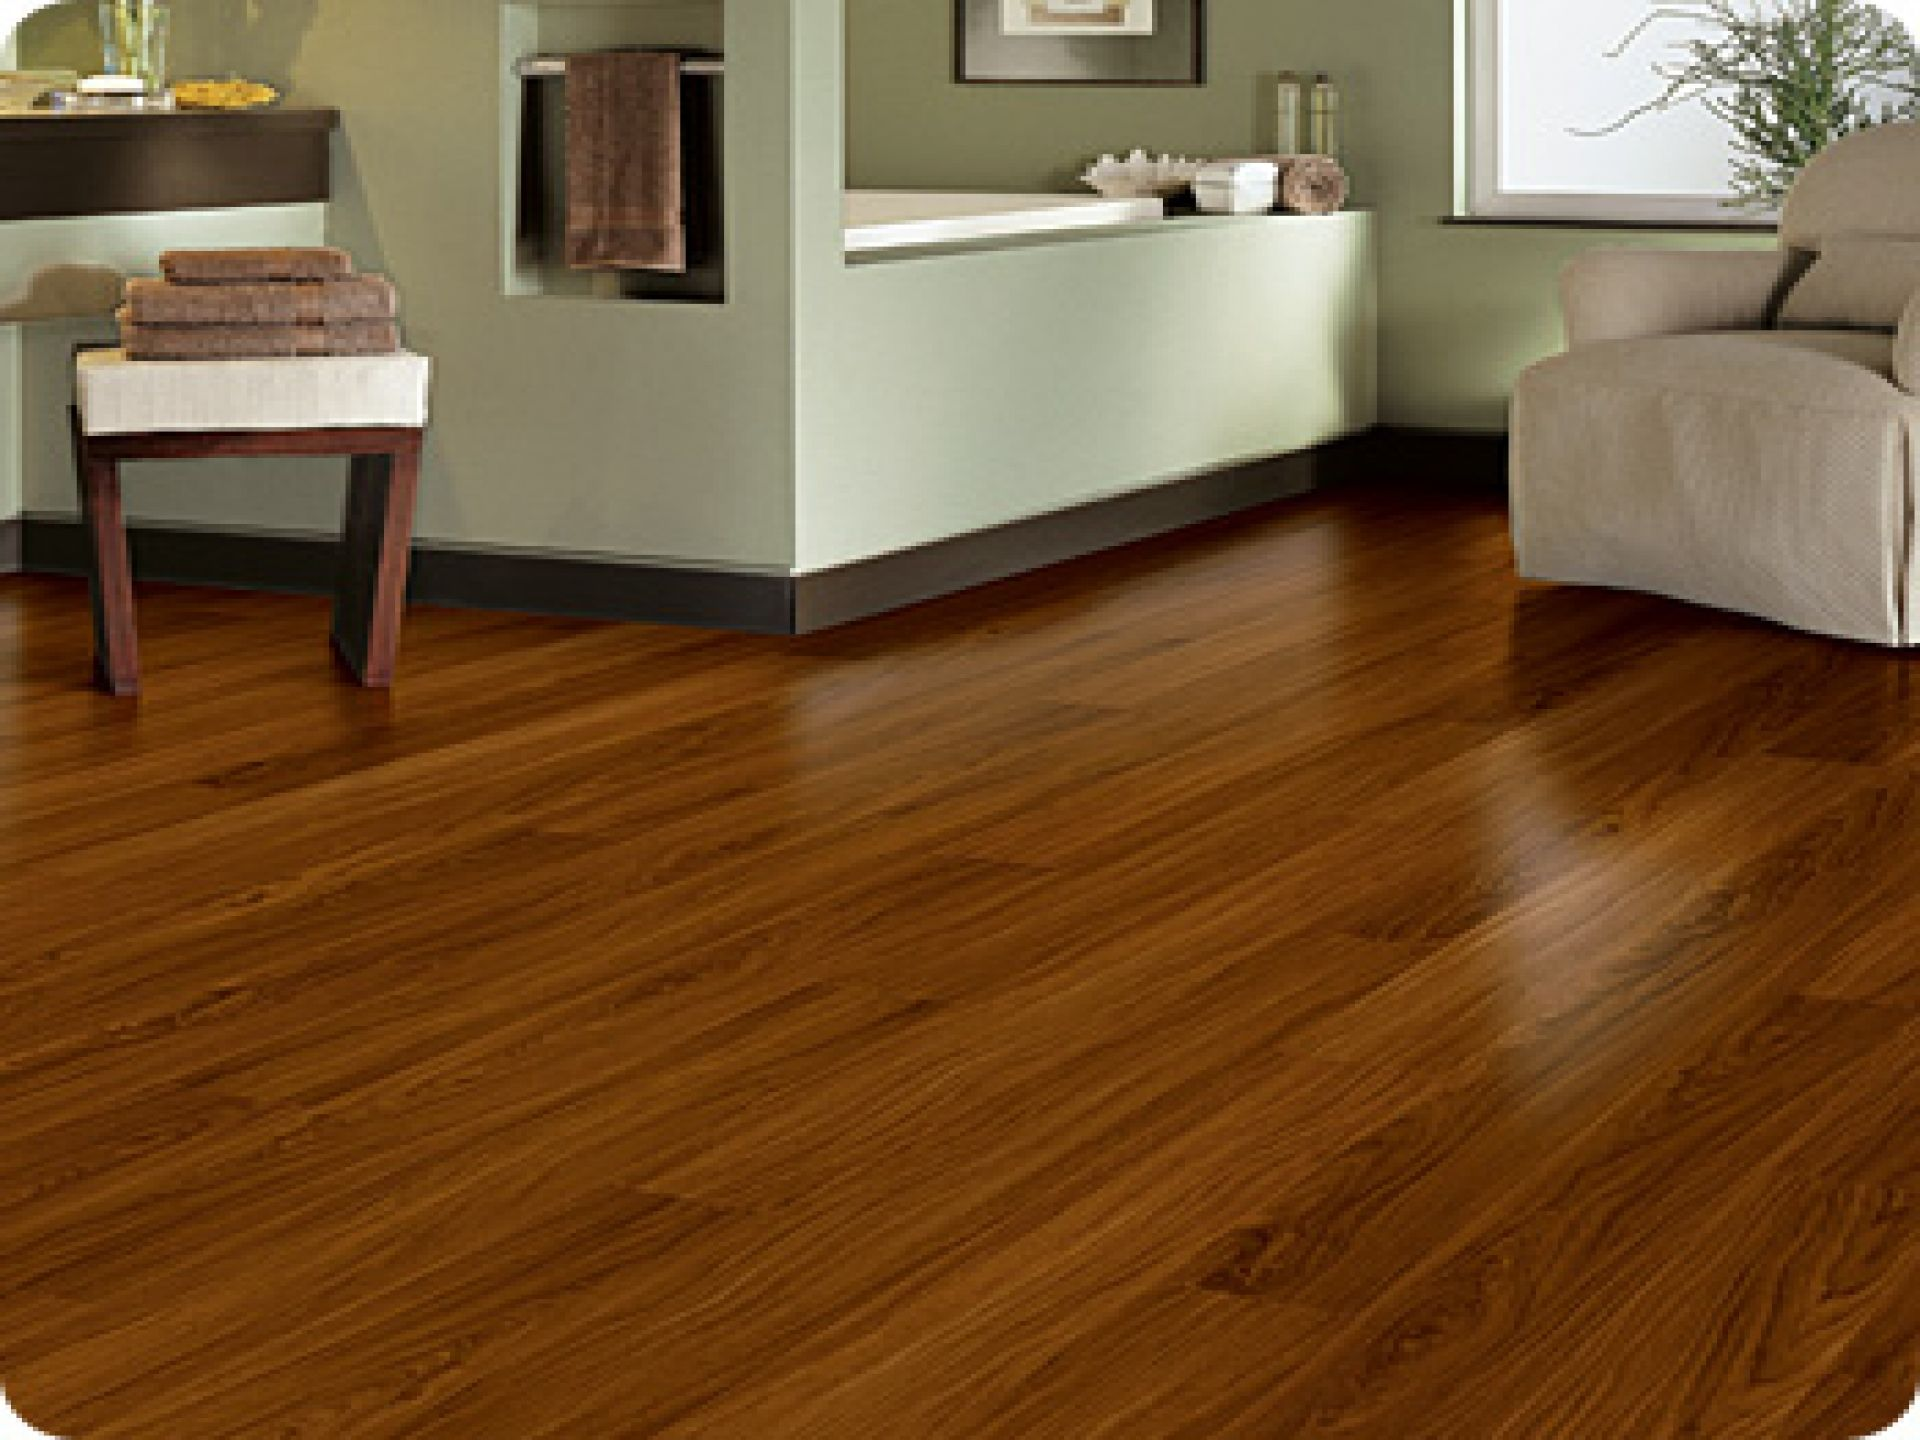 Interesting armstrong exquisite vinyl plank flooring butterscotch interesting armstrong exquisite vinyl plank flooring butterscotch oak and vinyl plank flooring for bathroom dailygadgetfo Image collections